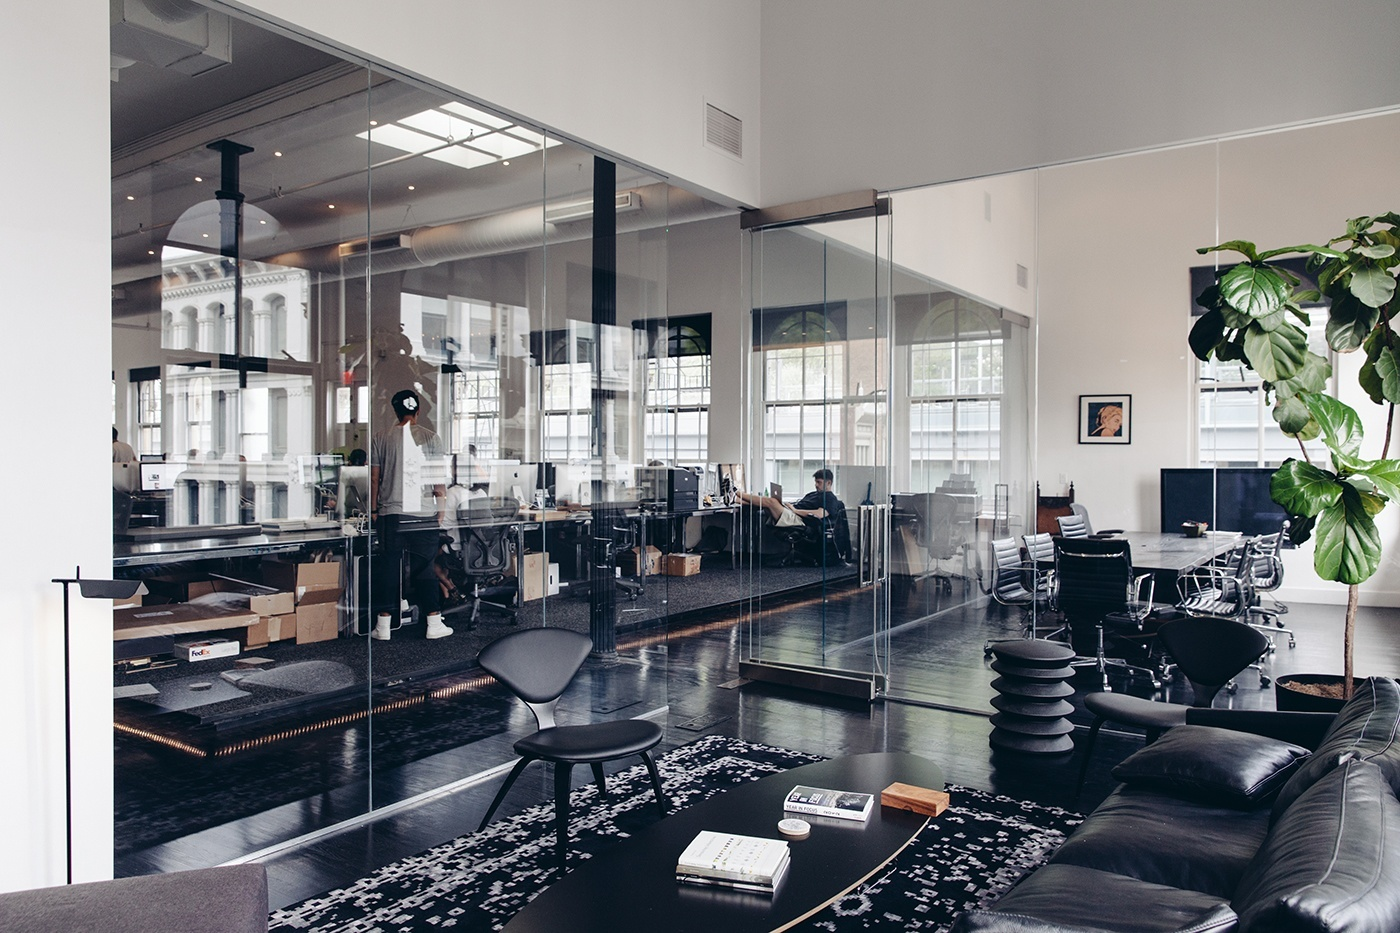 squarespace-nyc-office-space